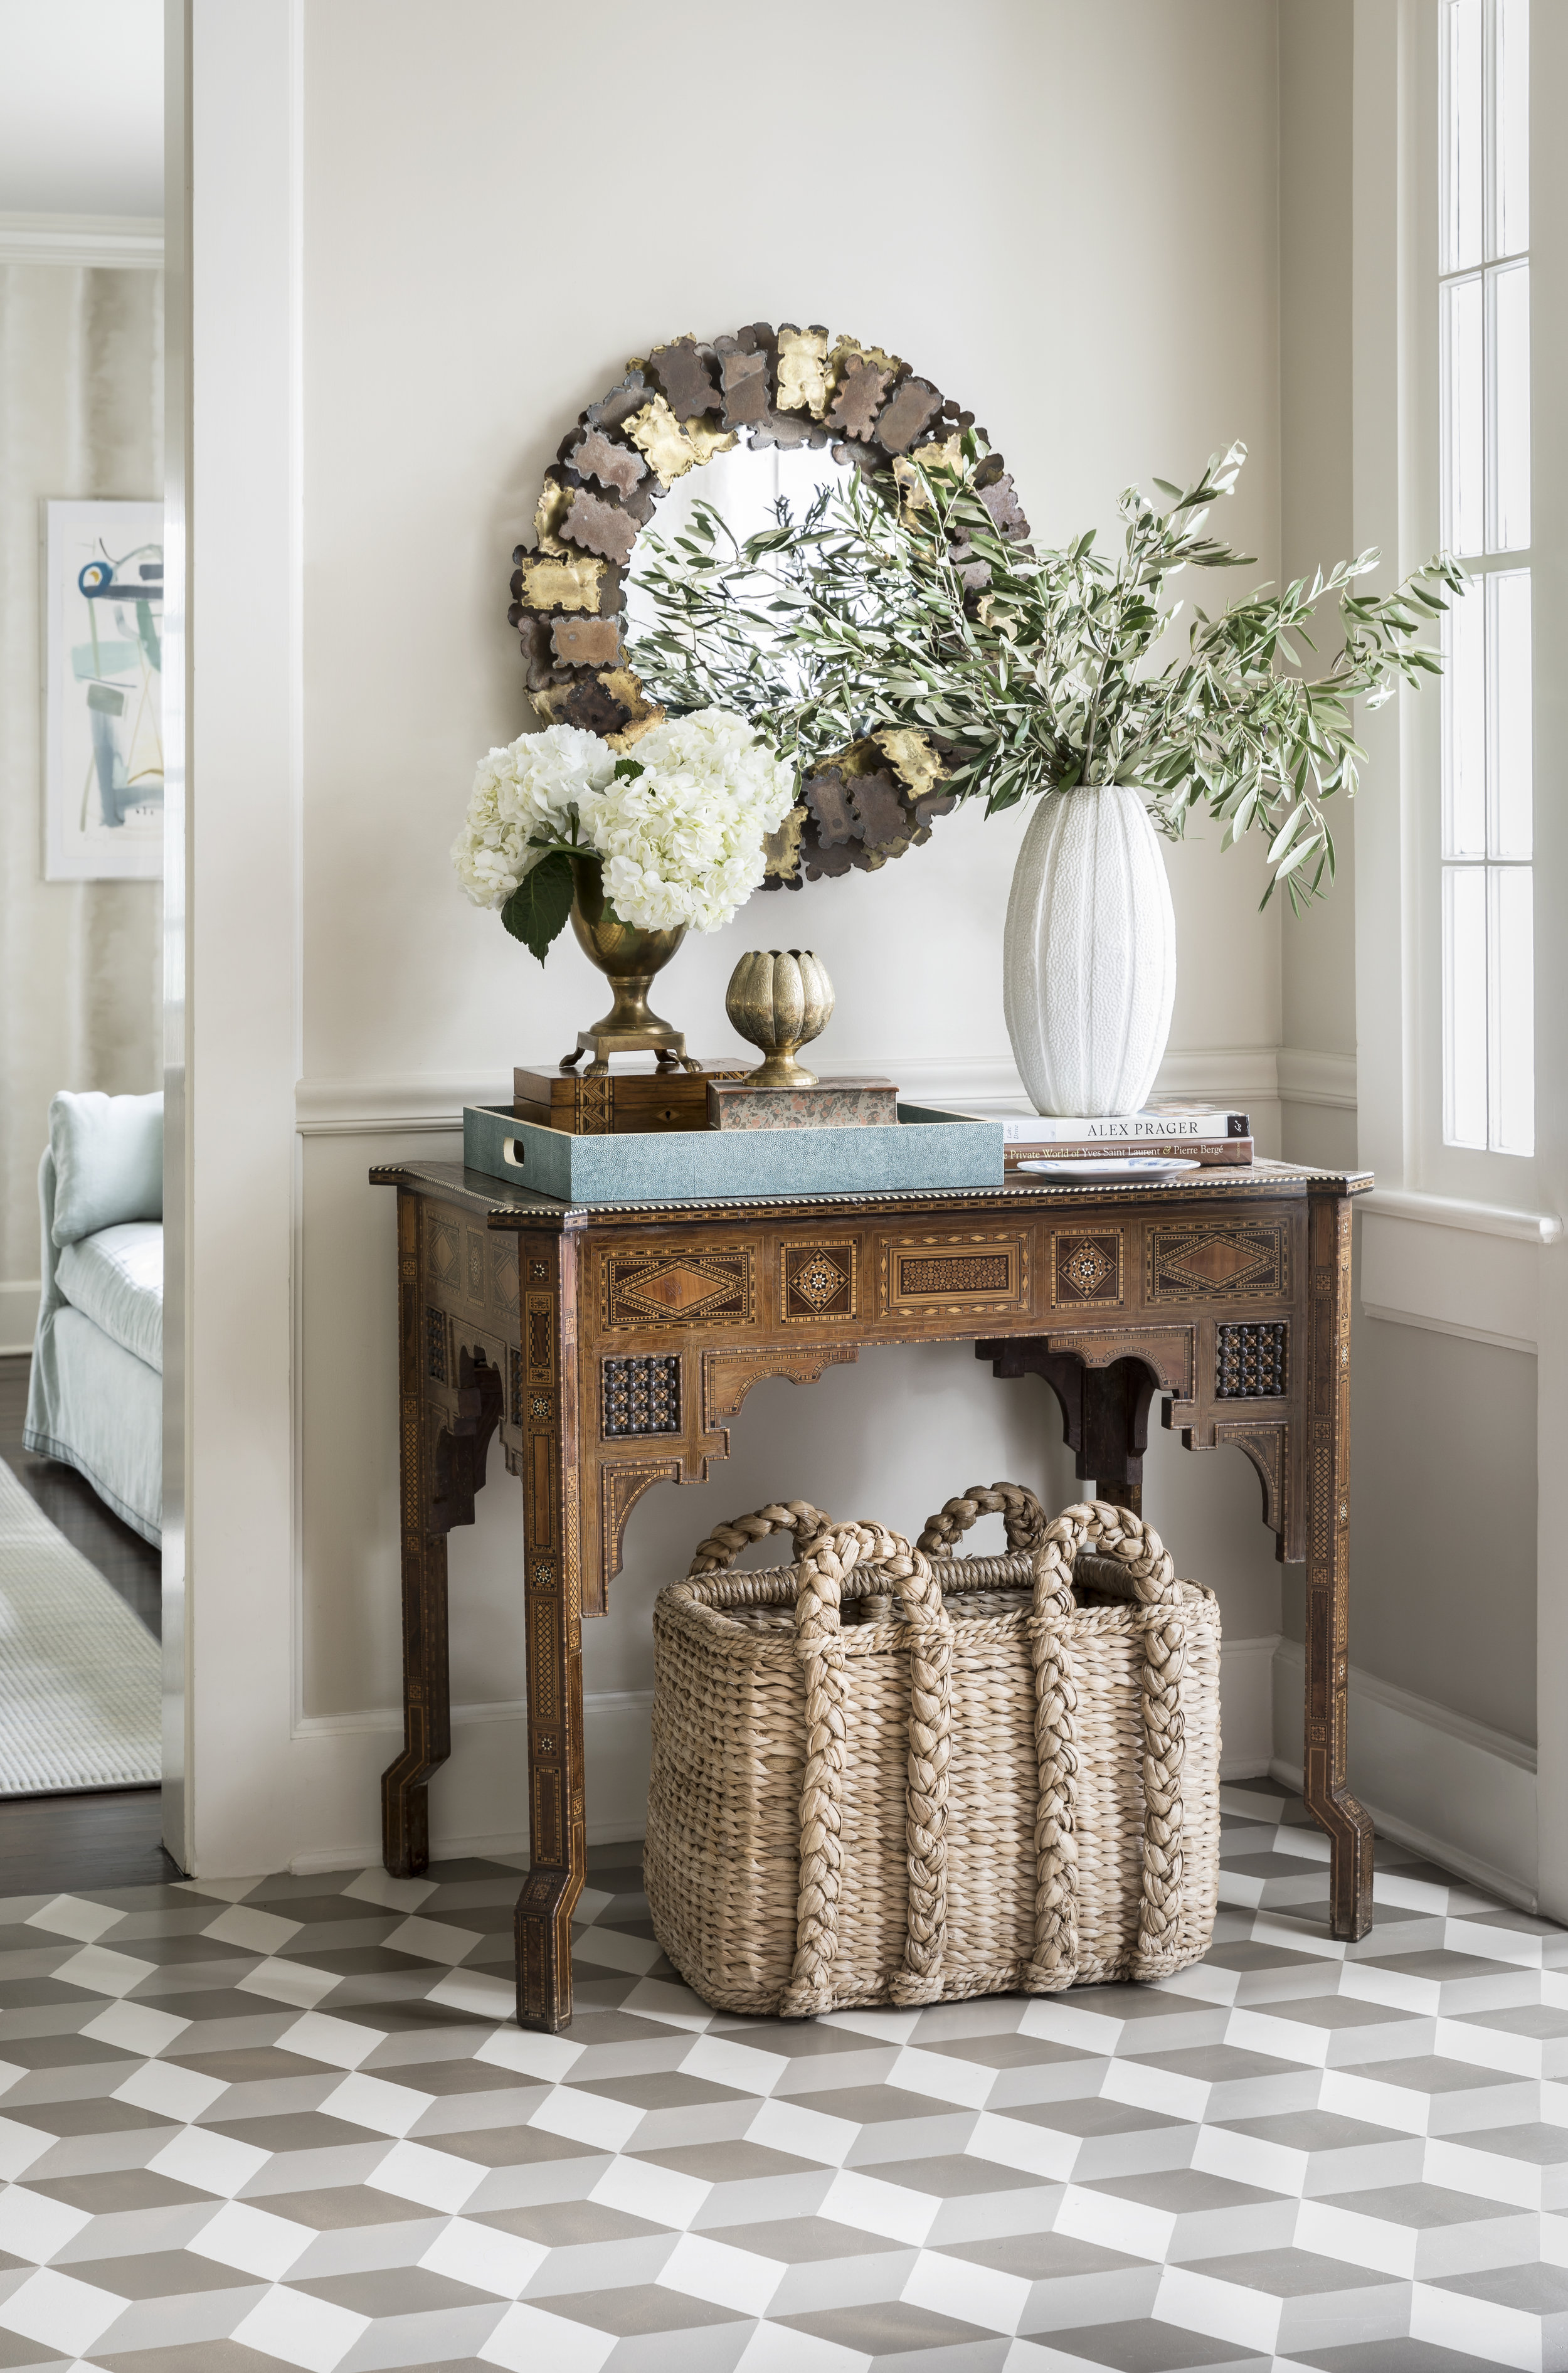 Interior design by Kevin Isbell, Photography by Lesley Unruh, and Styling by Frances Bailey. Produced by Hanna Creative Co.